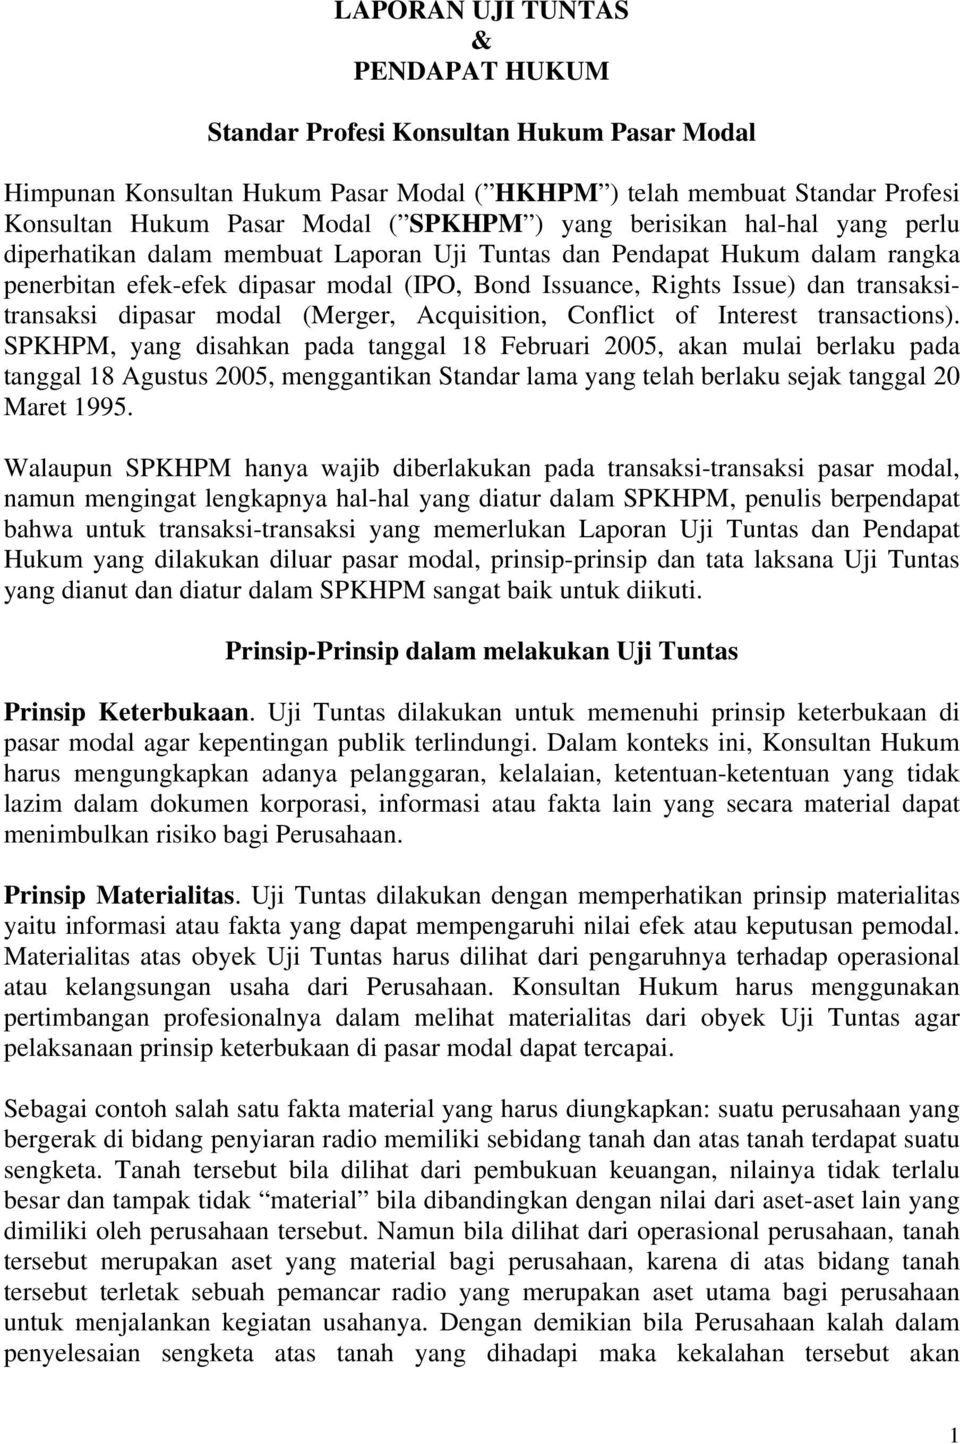 transaksitransaksi dipasar modal (Merger, Acquisition, Conflict of Interest transactions).